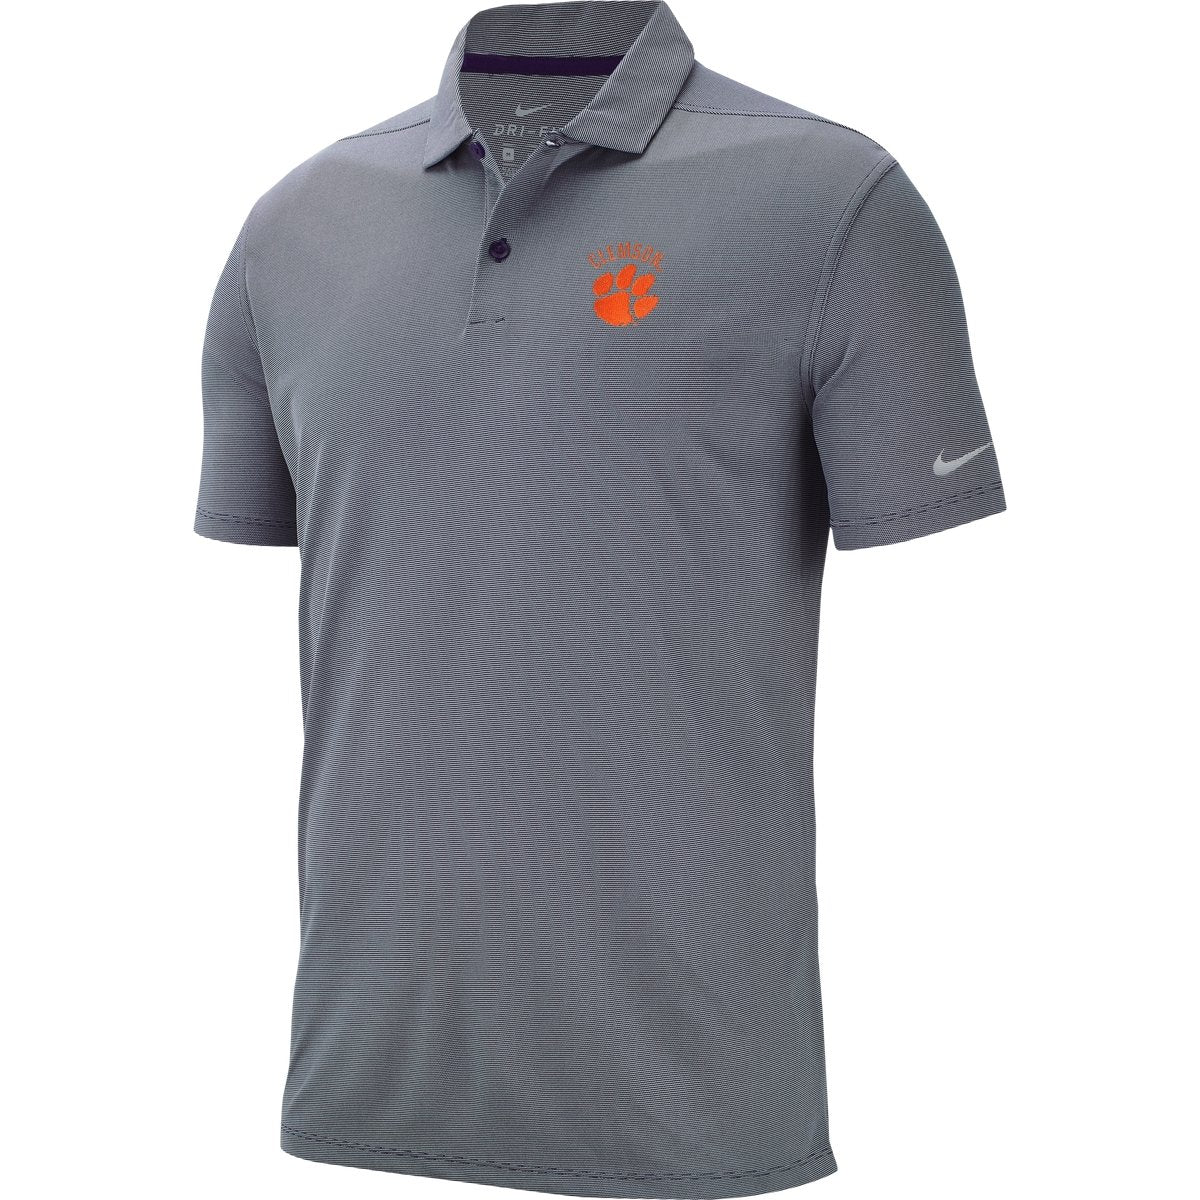 Nike Victory Textured Polo - Mr. Knickerbocker